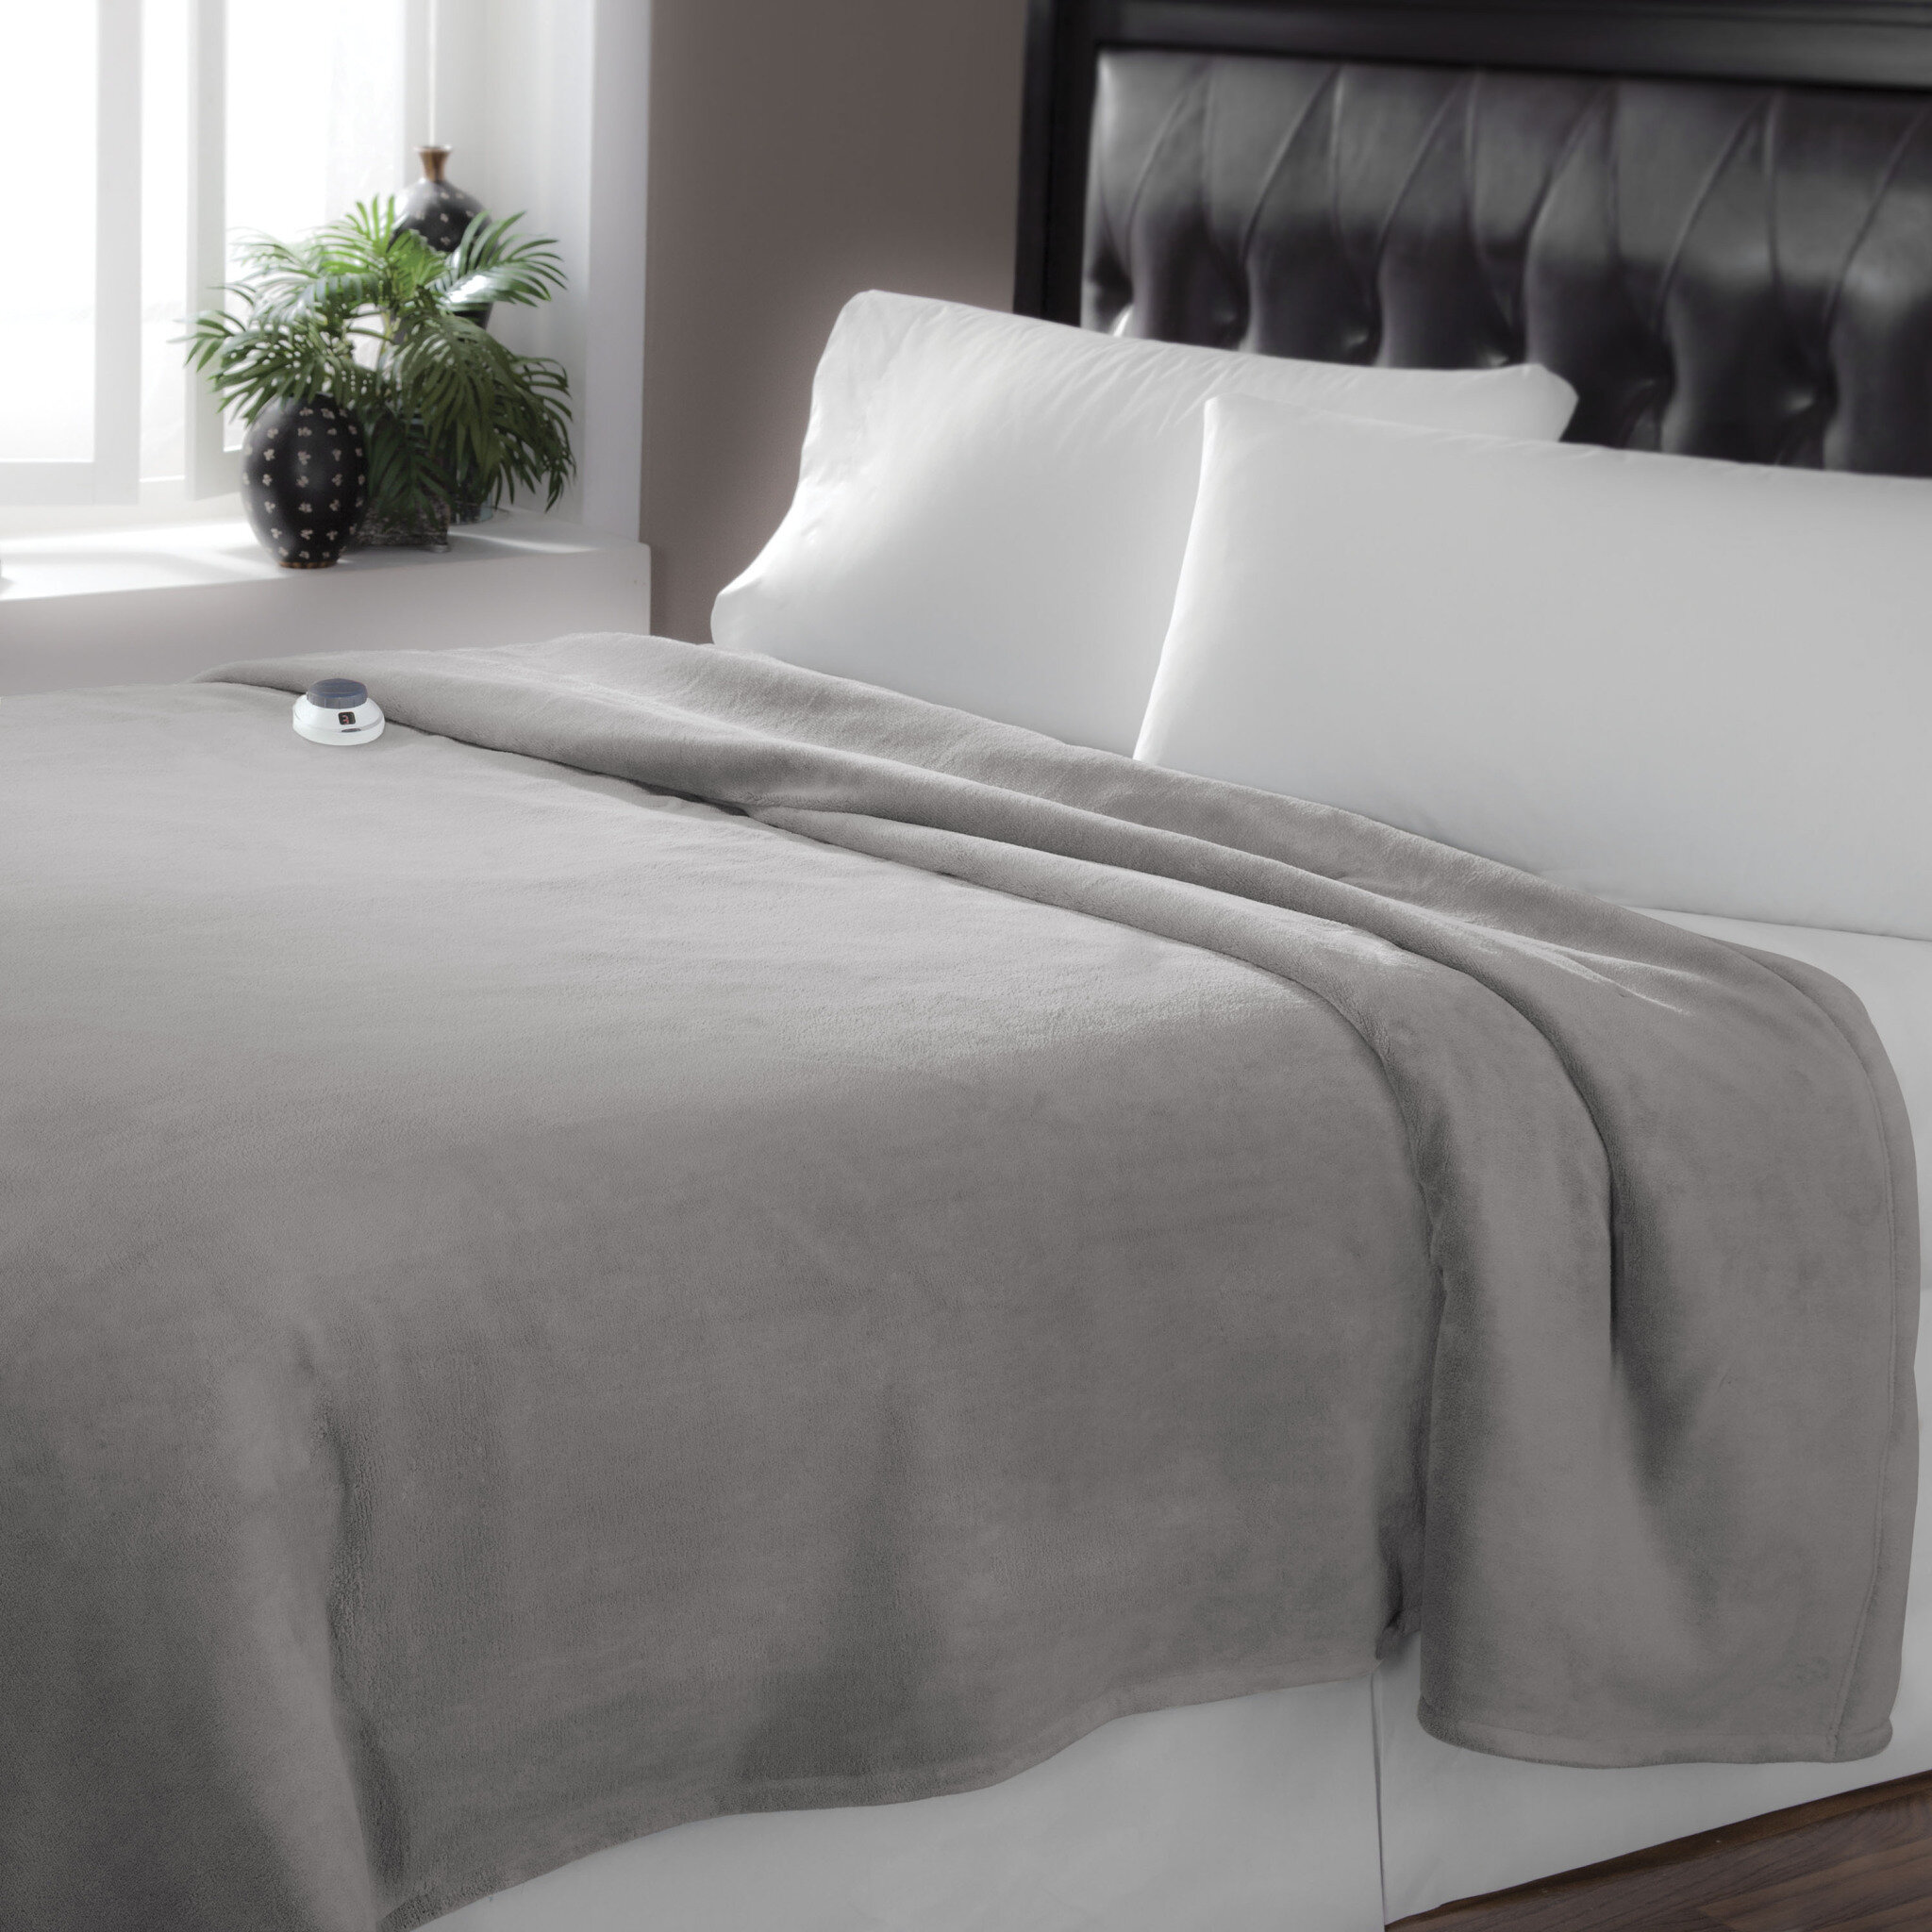 7f4756dec2 SFTH Low Voltage Technology Heated Electric Luxe Plush Warming Blanket    Reviews